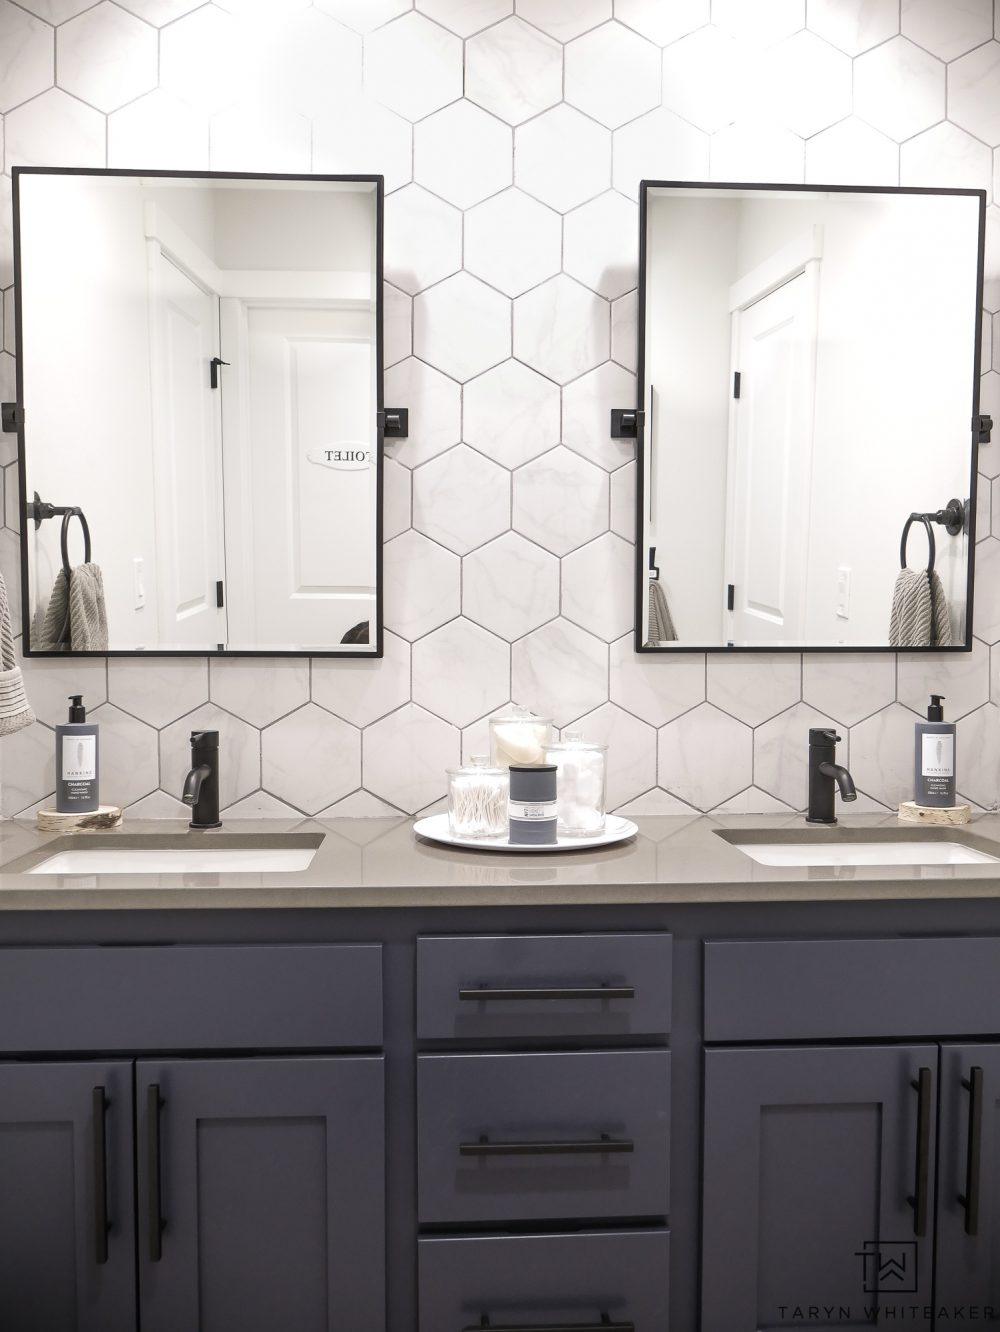 Love this rustic modern double sink vanity bathroom! The full wall backsplash with double mirrors and industrial fixtures has a really unique look.